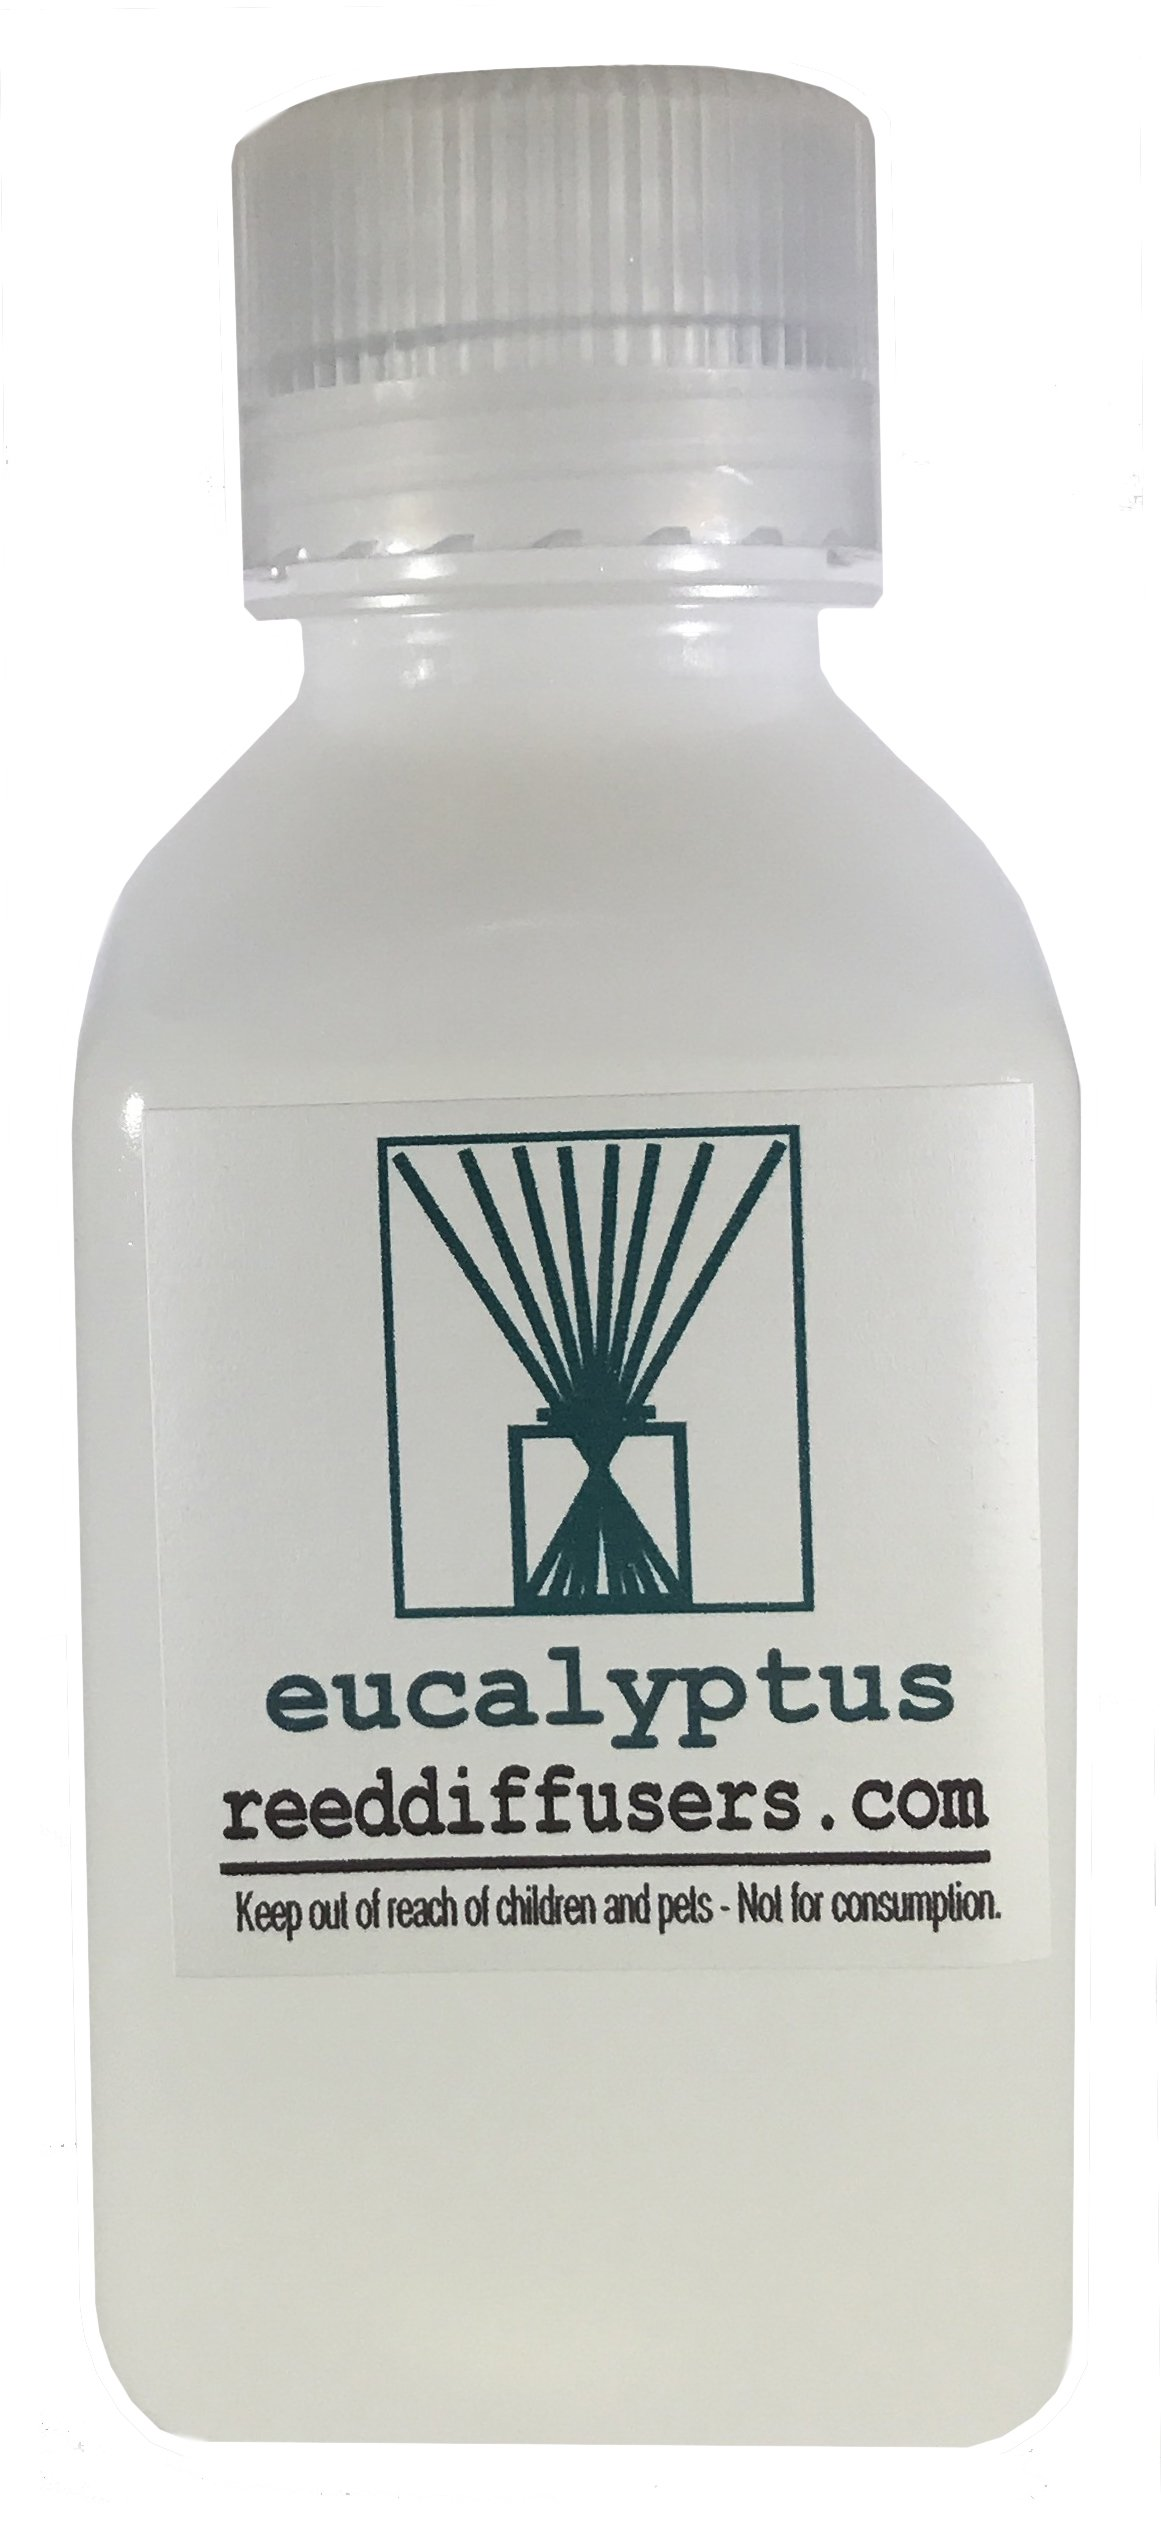 Eucalyptus Fragrance Reed Diffuser Oil Refill - 8oz - Made in the USA by ReedDiffusers.com (Image #1)